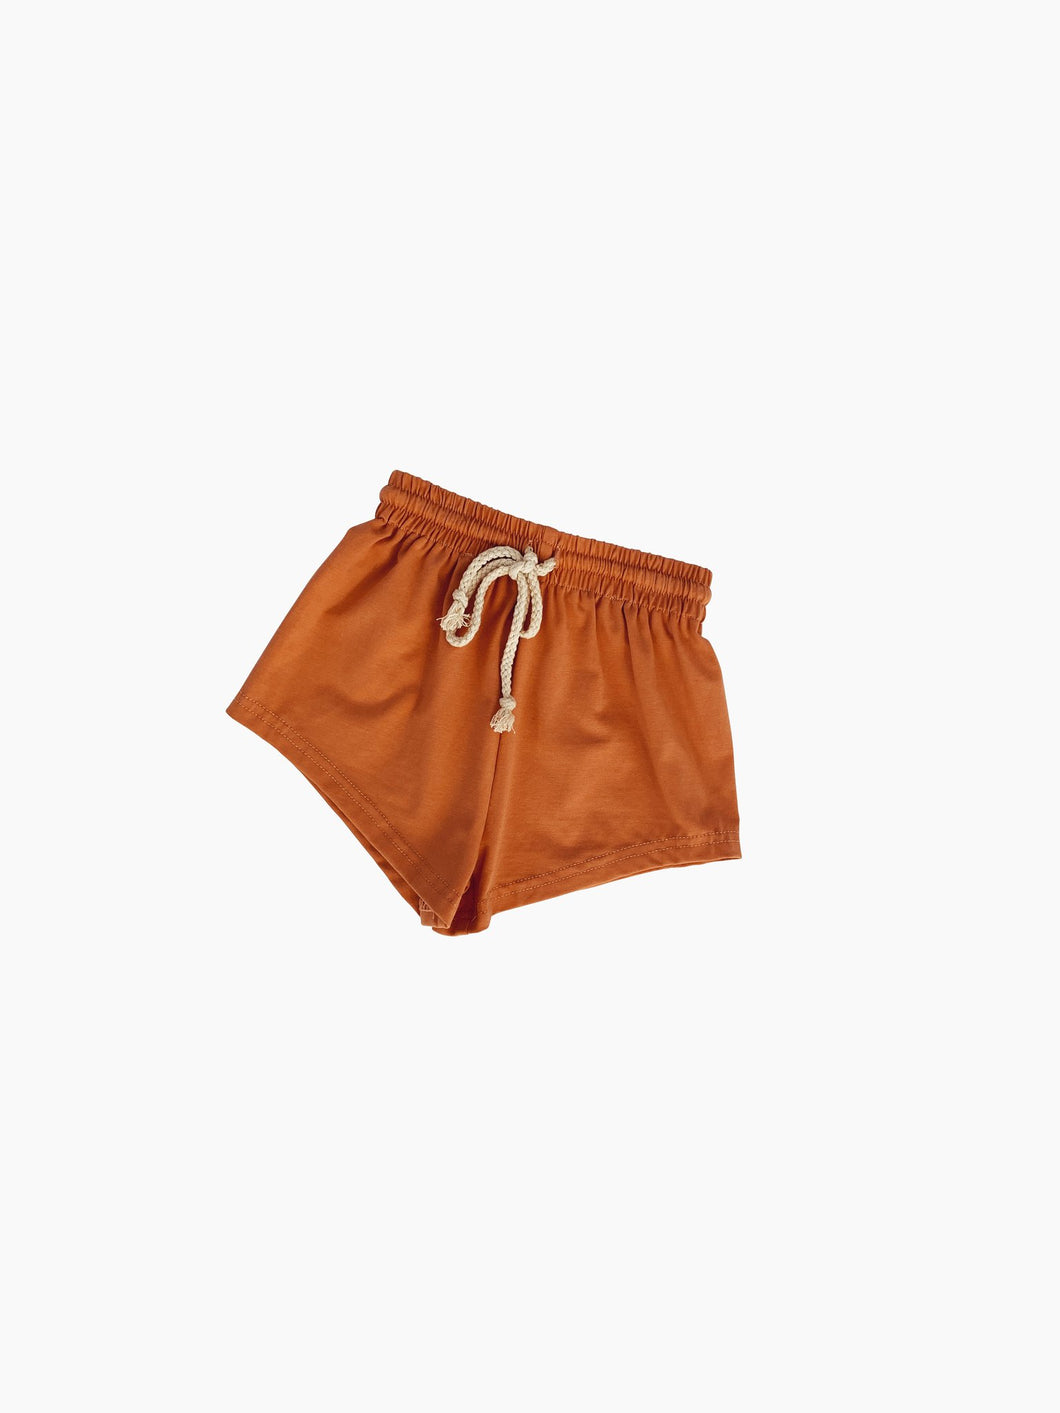 Indah Designs Olie Shorts